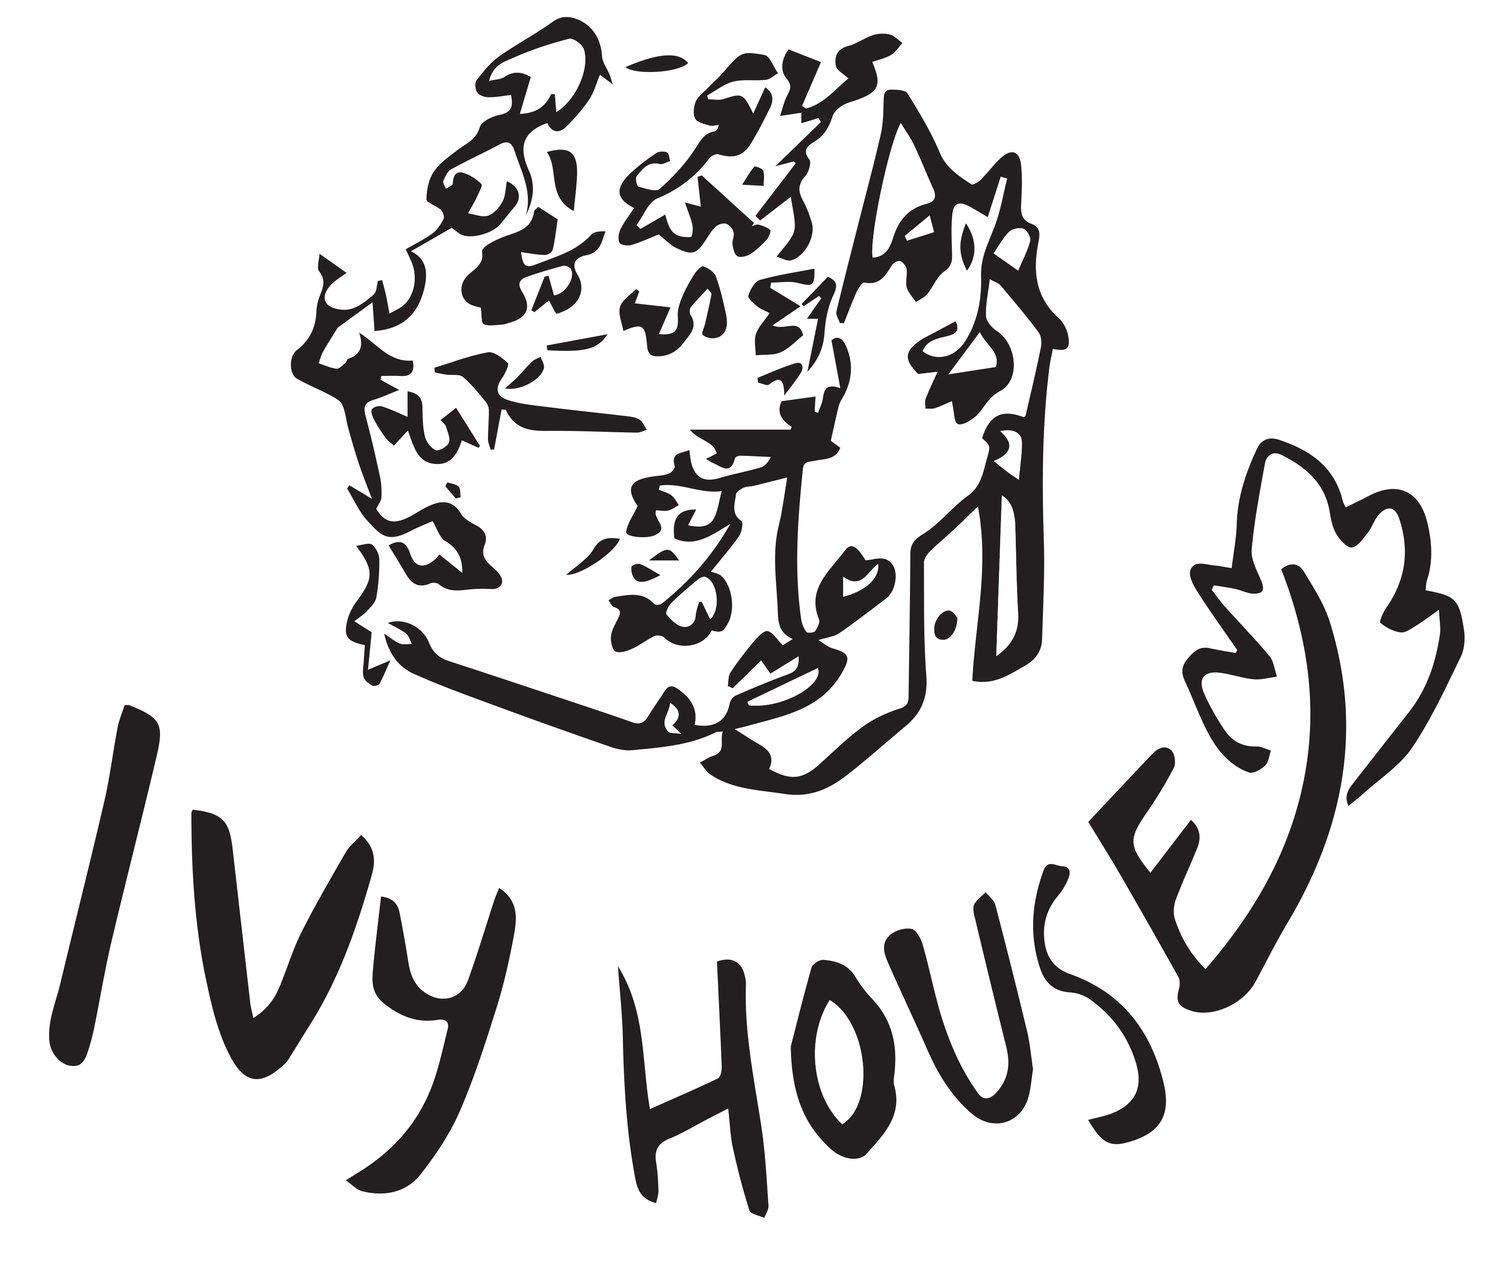 Ivy House Design